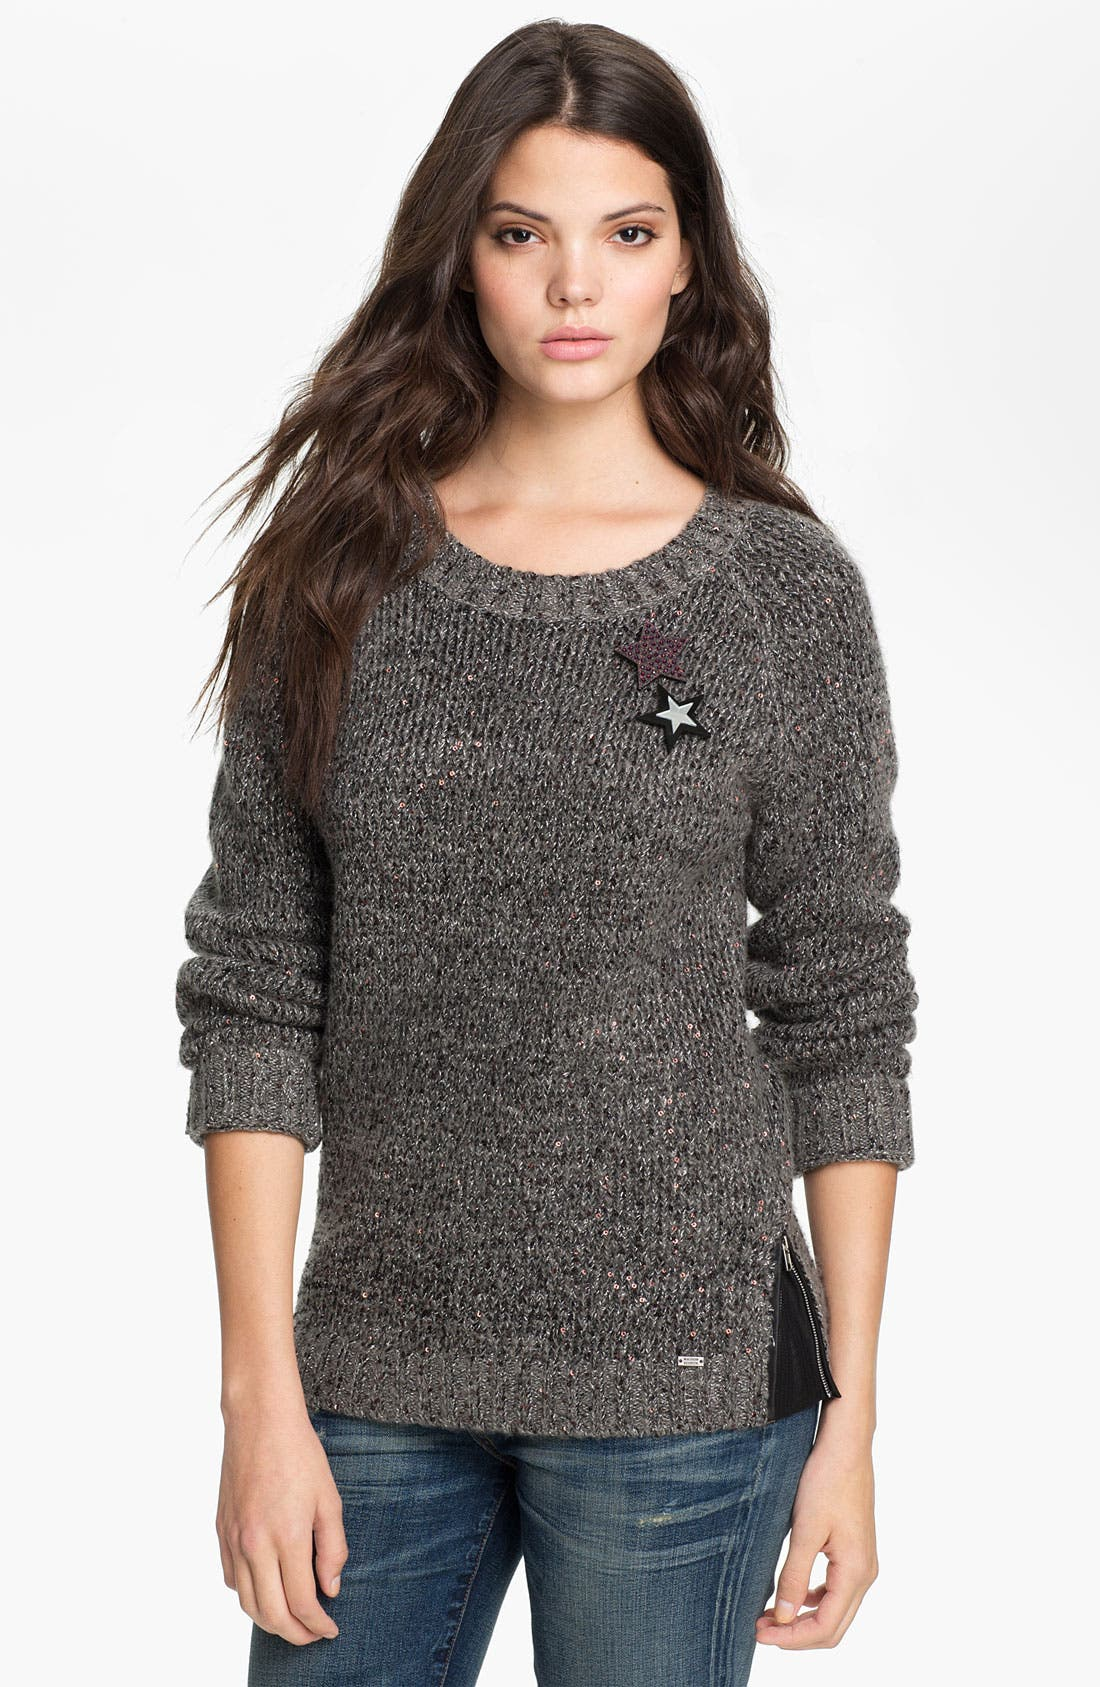 Alternate Image 1 Selected - Maison Scotch Sequin Sweater